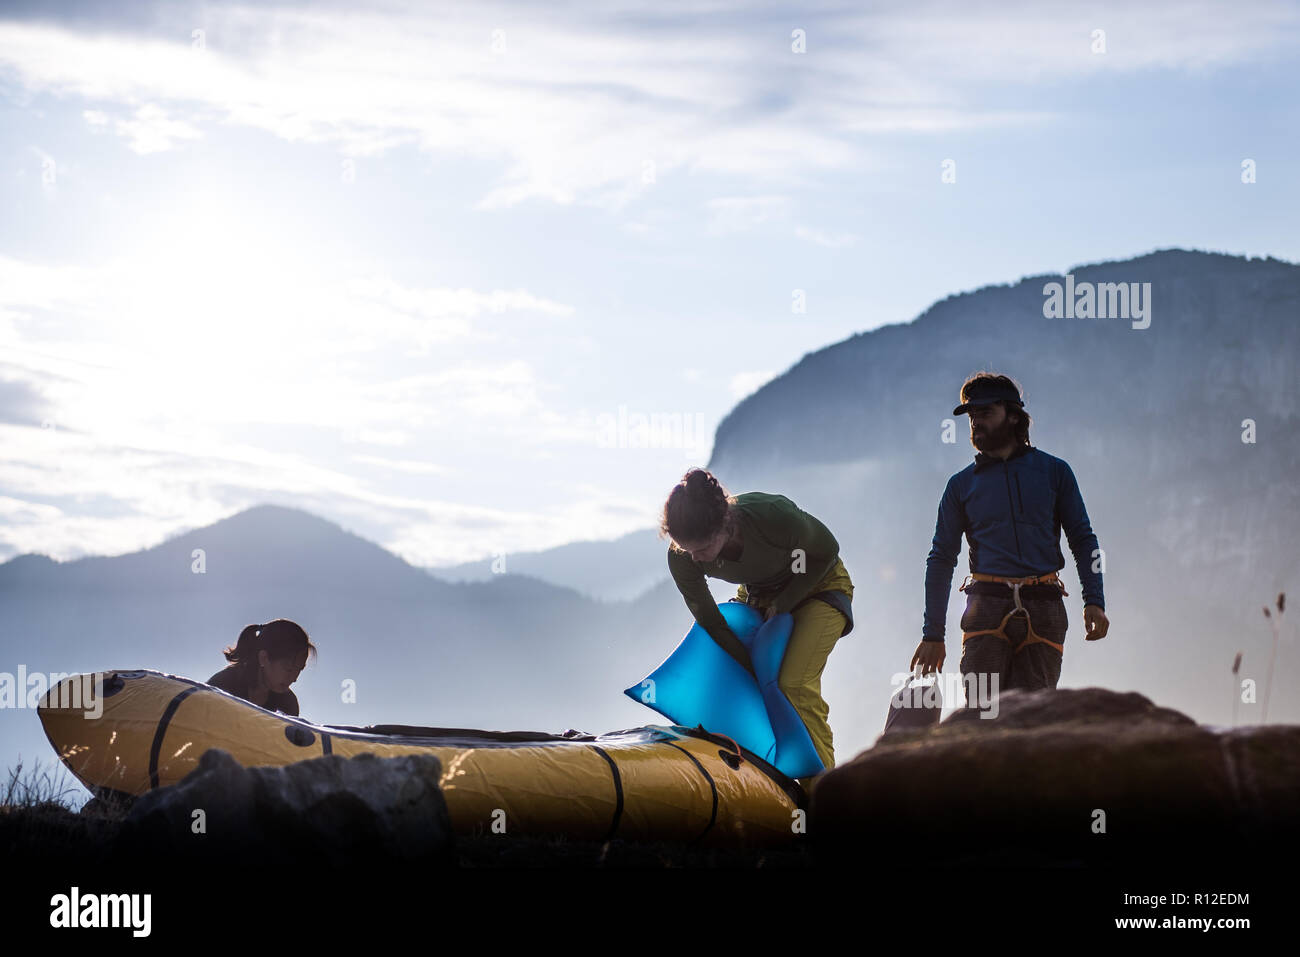 Friends on rock climbing trip, Squamish, Canada Stock Photo